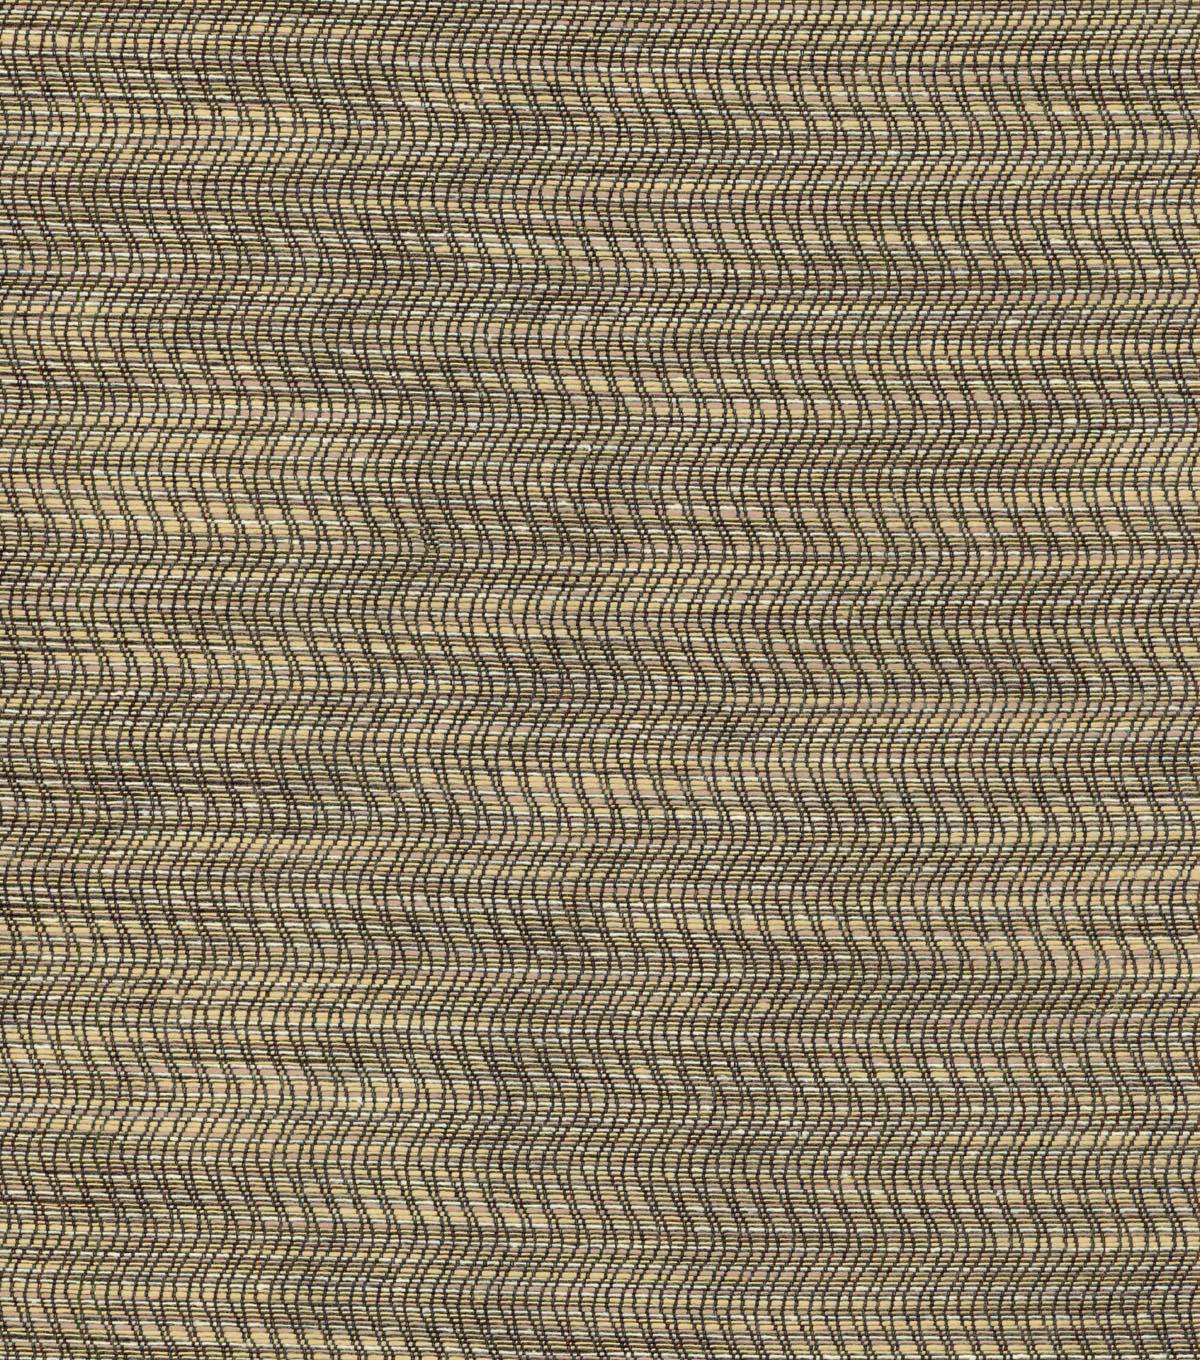 Home Decor 8\u0022x8\u0022 Swatch Fabric-PK Lifestyles Shimmy Portobello